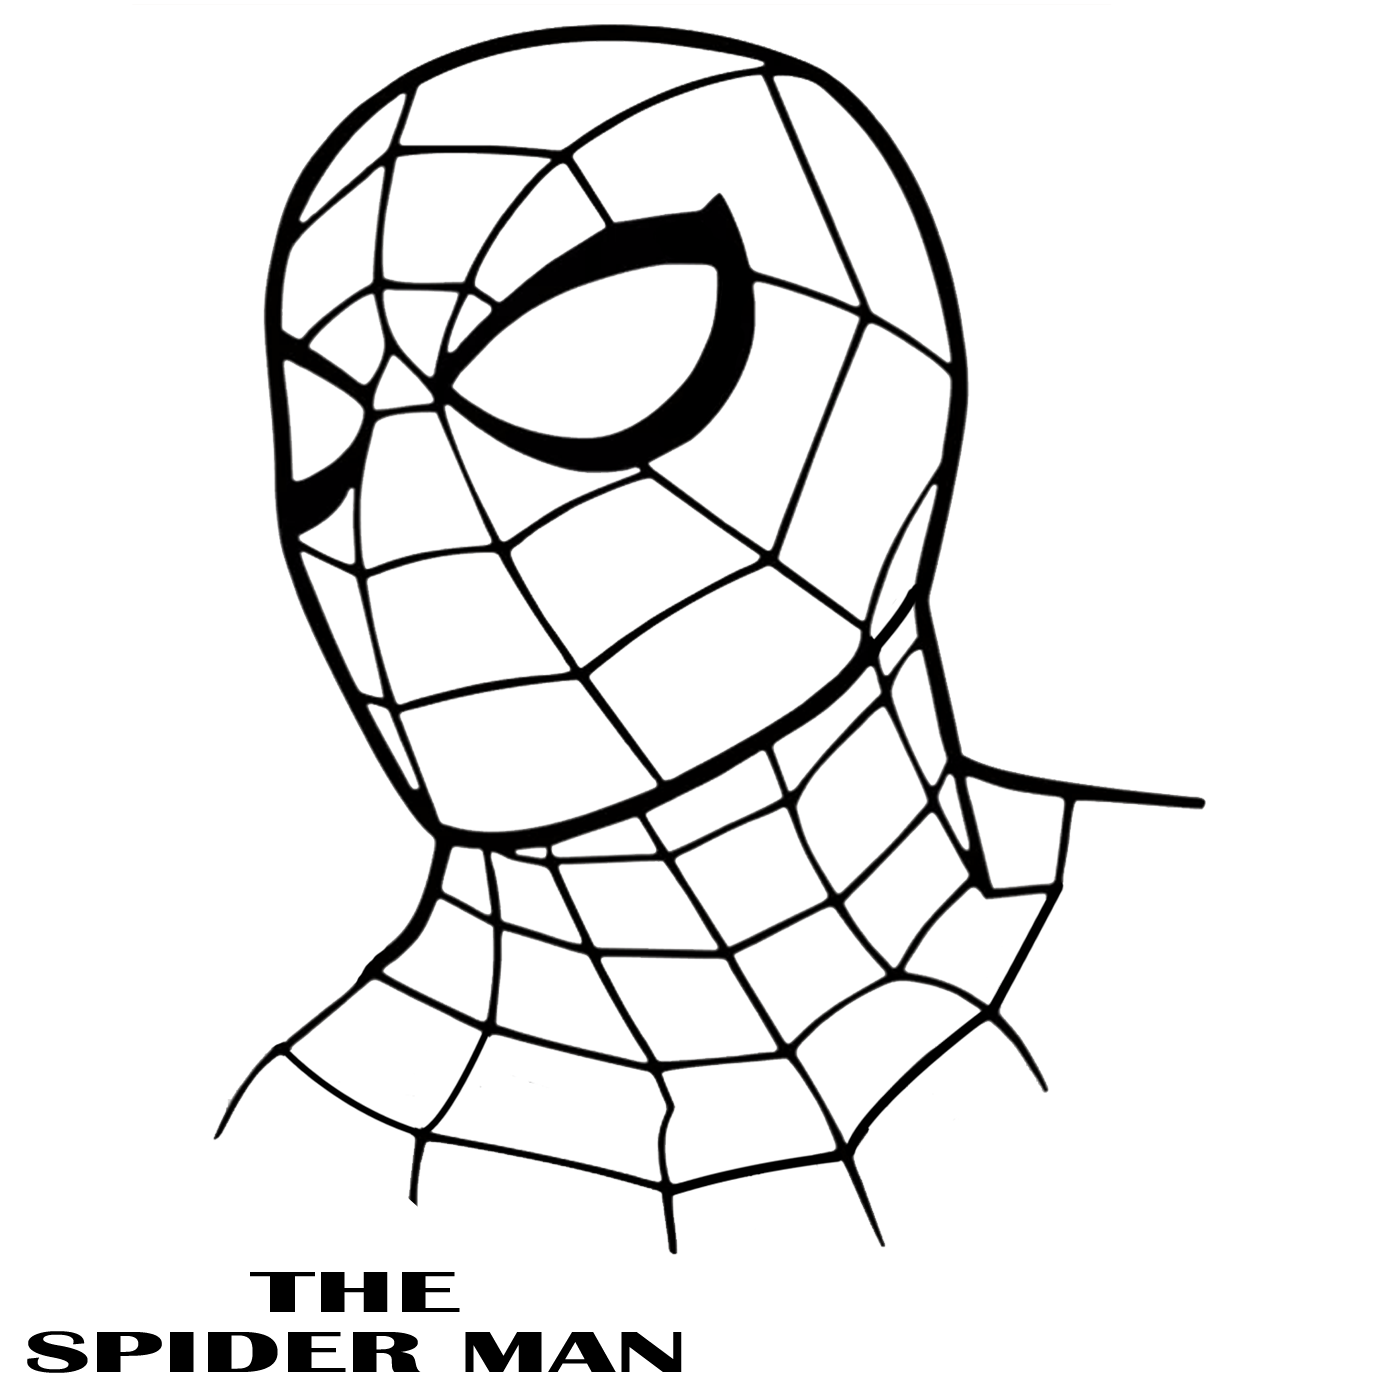 spiderman outline spiderman outline drawing at paintingvalleycom explore spiderman outline